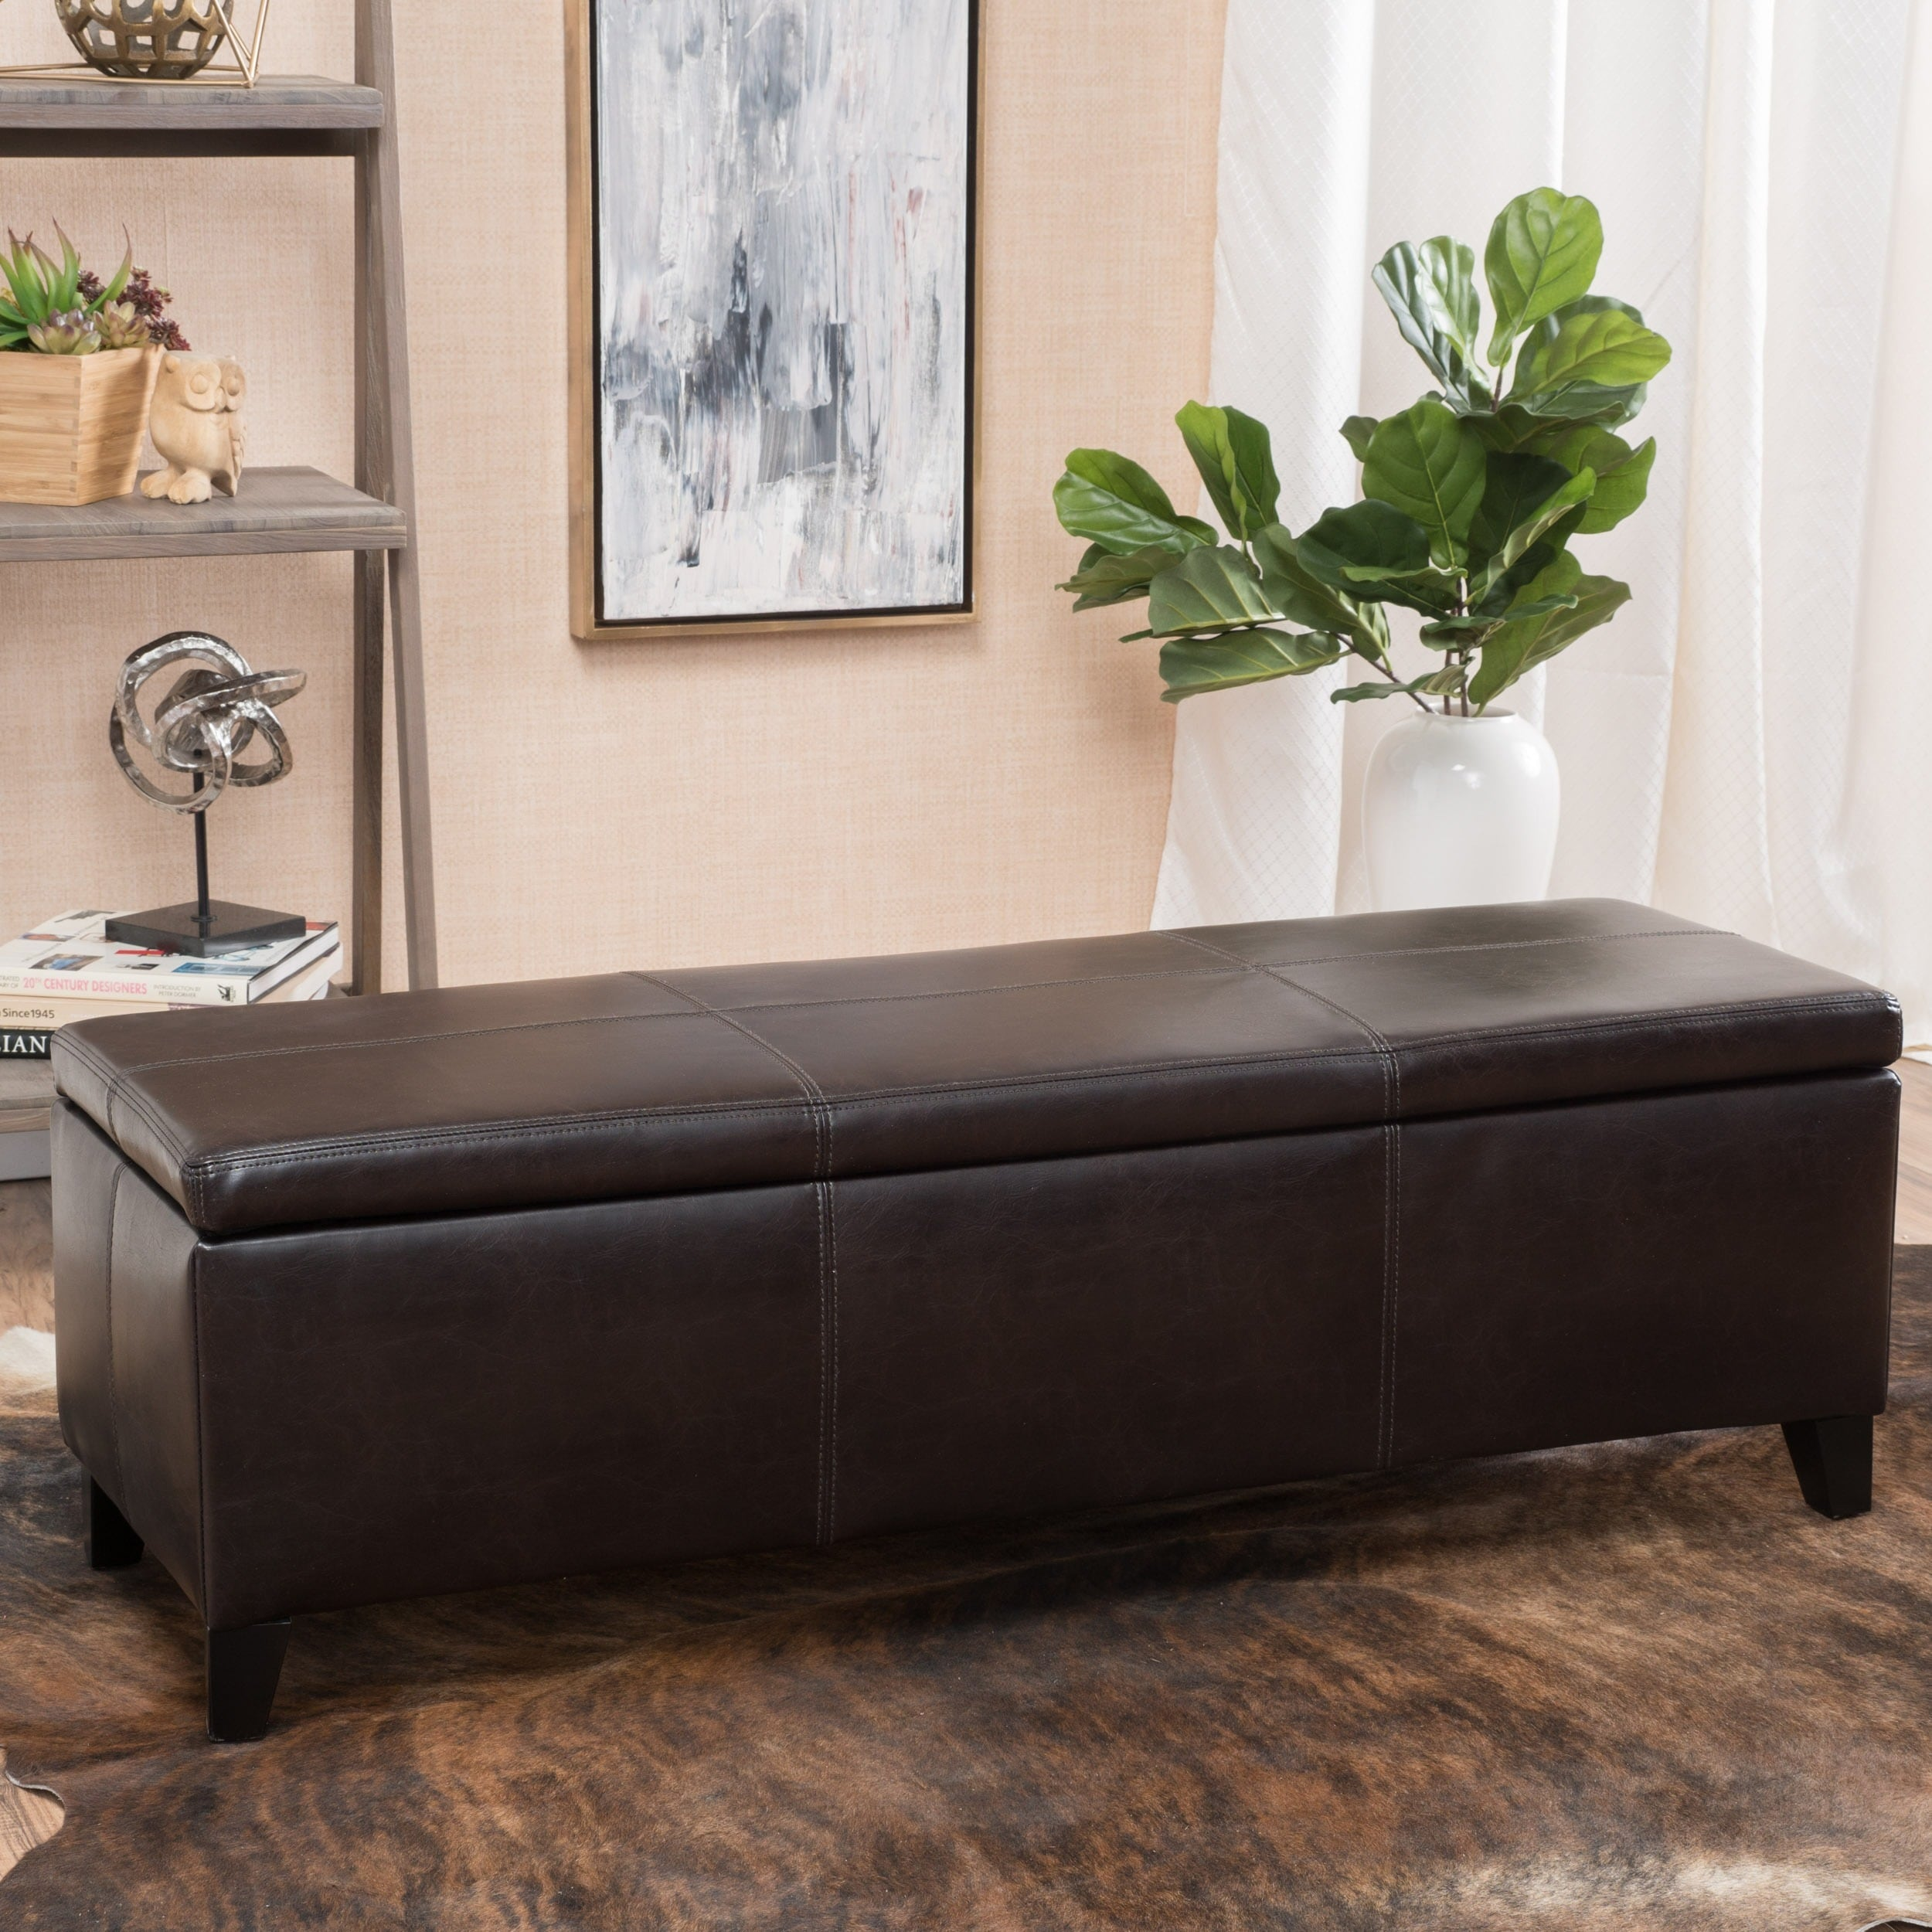 Shop Lucinda Faux Leather Storage Bench   On Sale   Free Shipping Today    Overstock.com   11421023